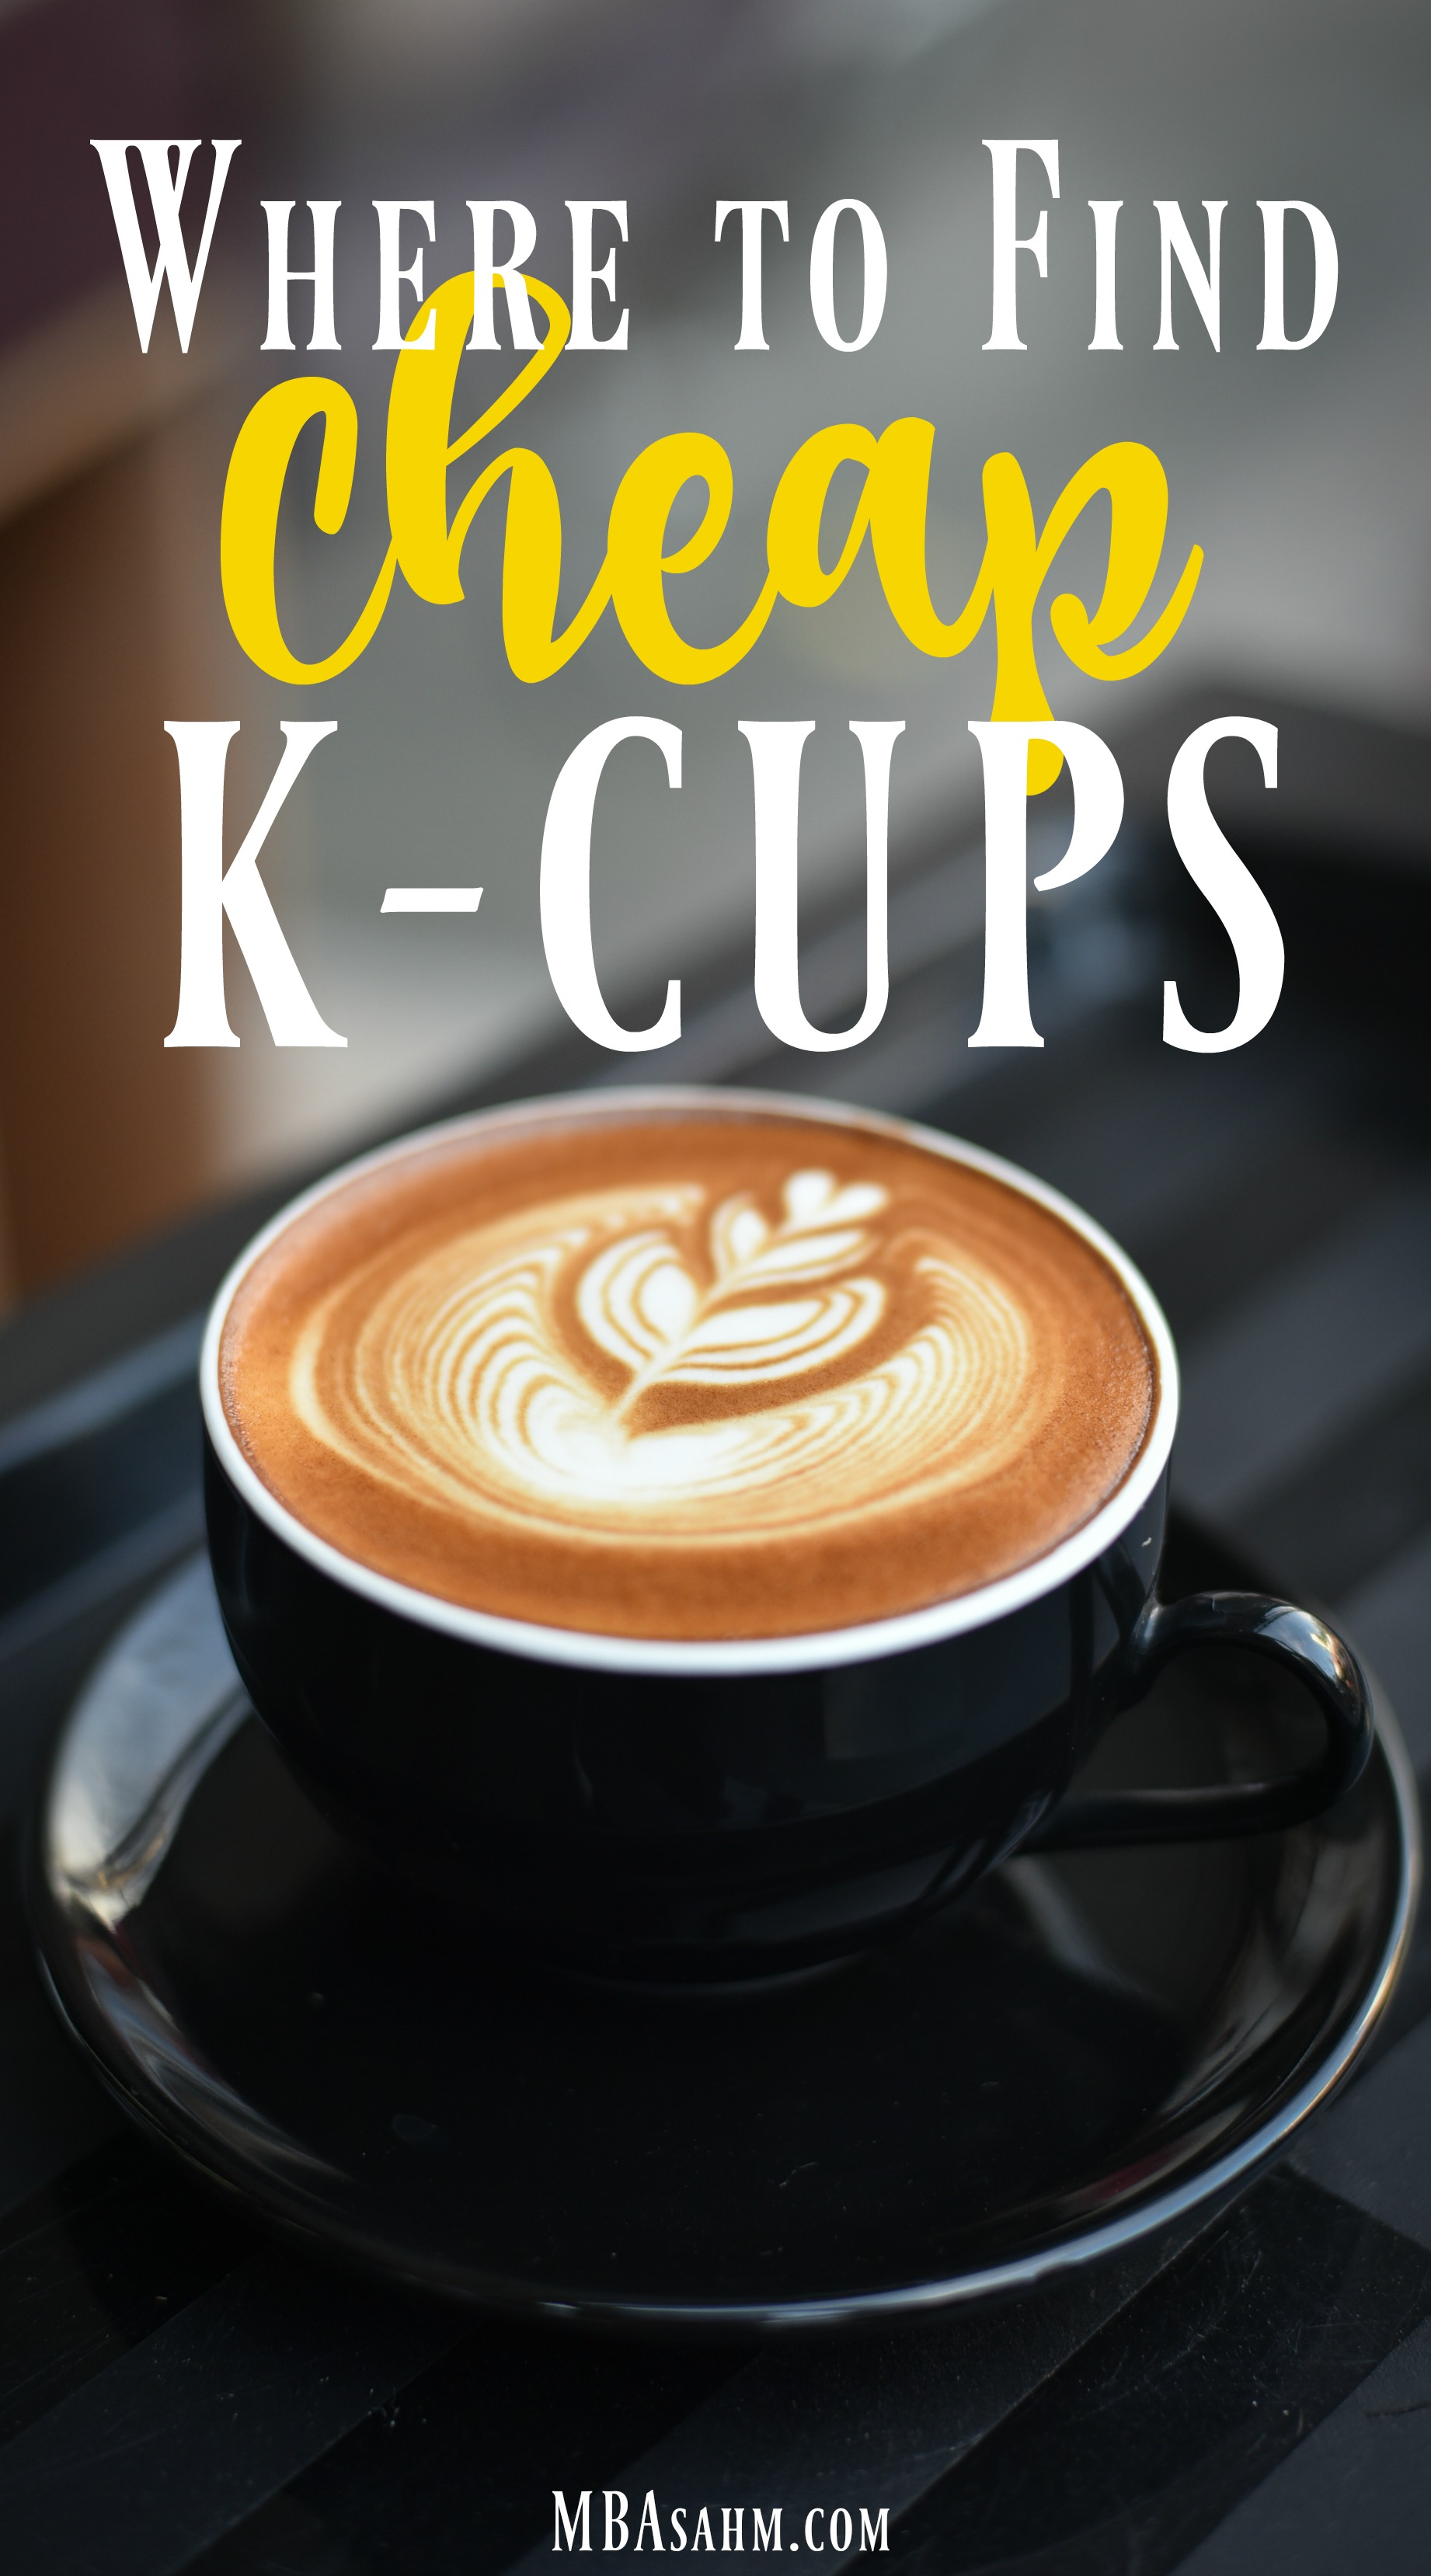 If you want to know where to find cheap K-cups, check out this list. You may be surprised by how easy it is to save money on K-cups!